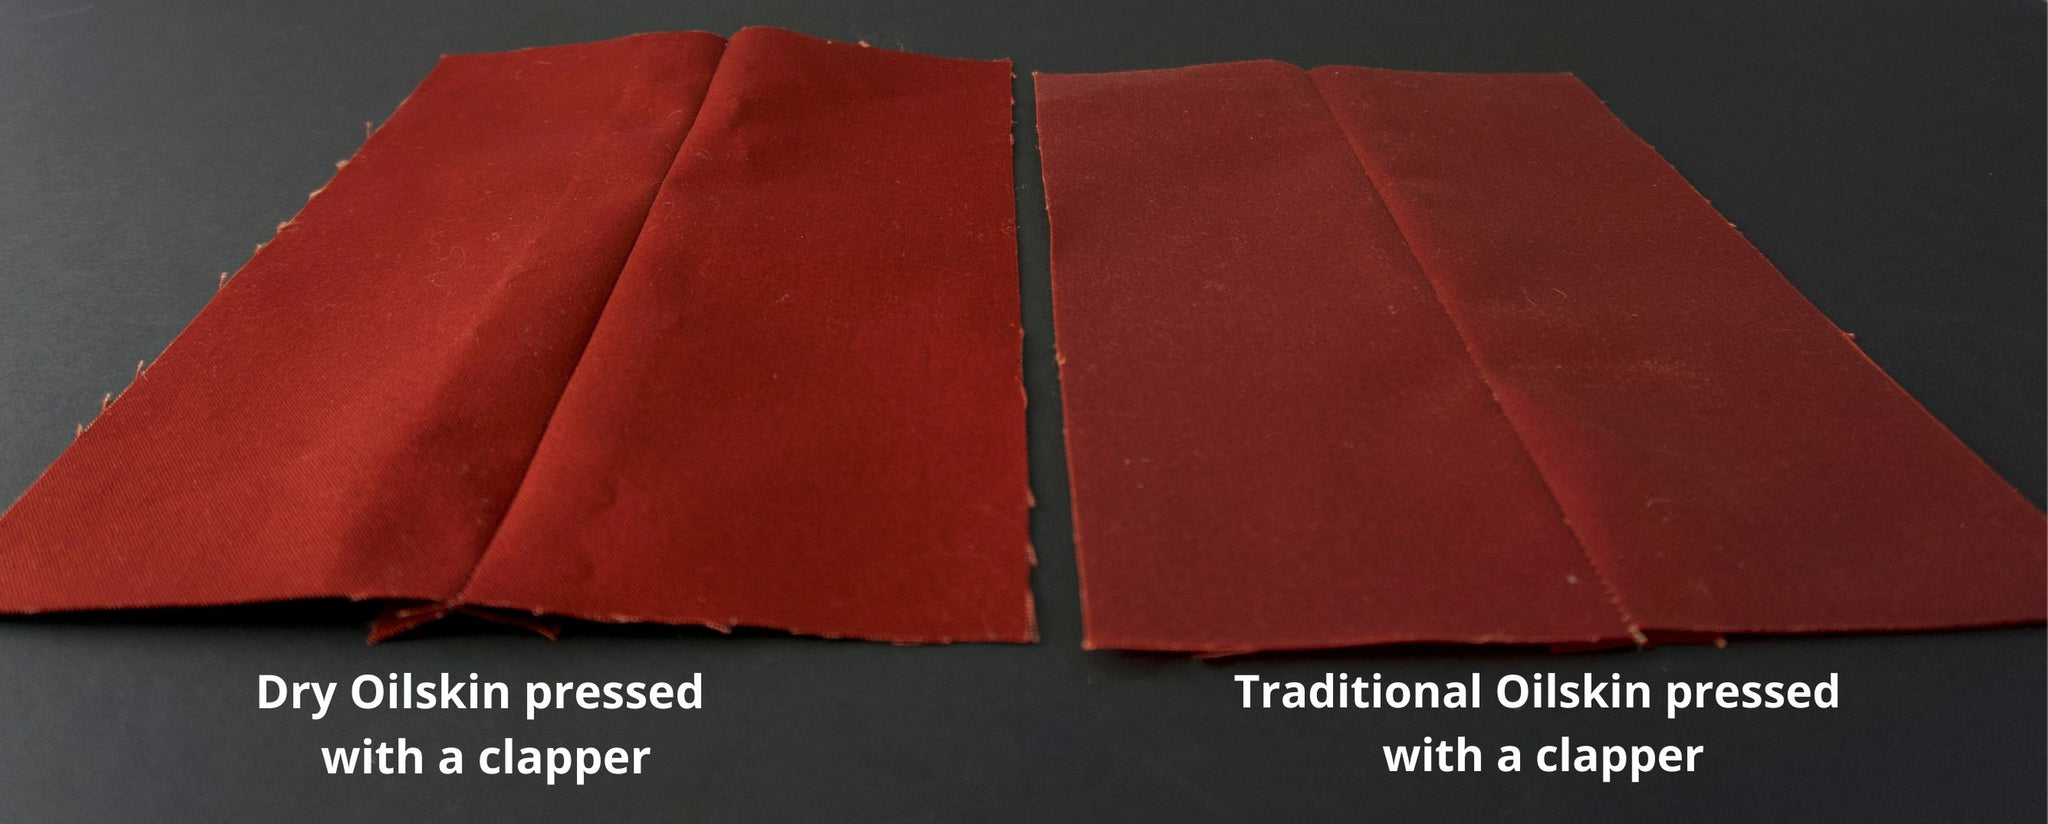 side by side image of dry and traditional oilskin pressed with a clapper